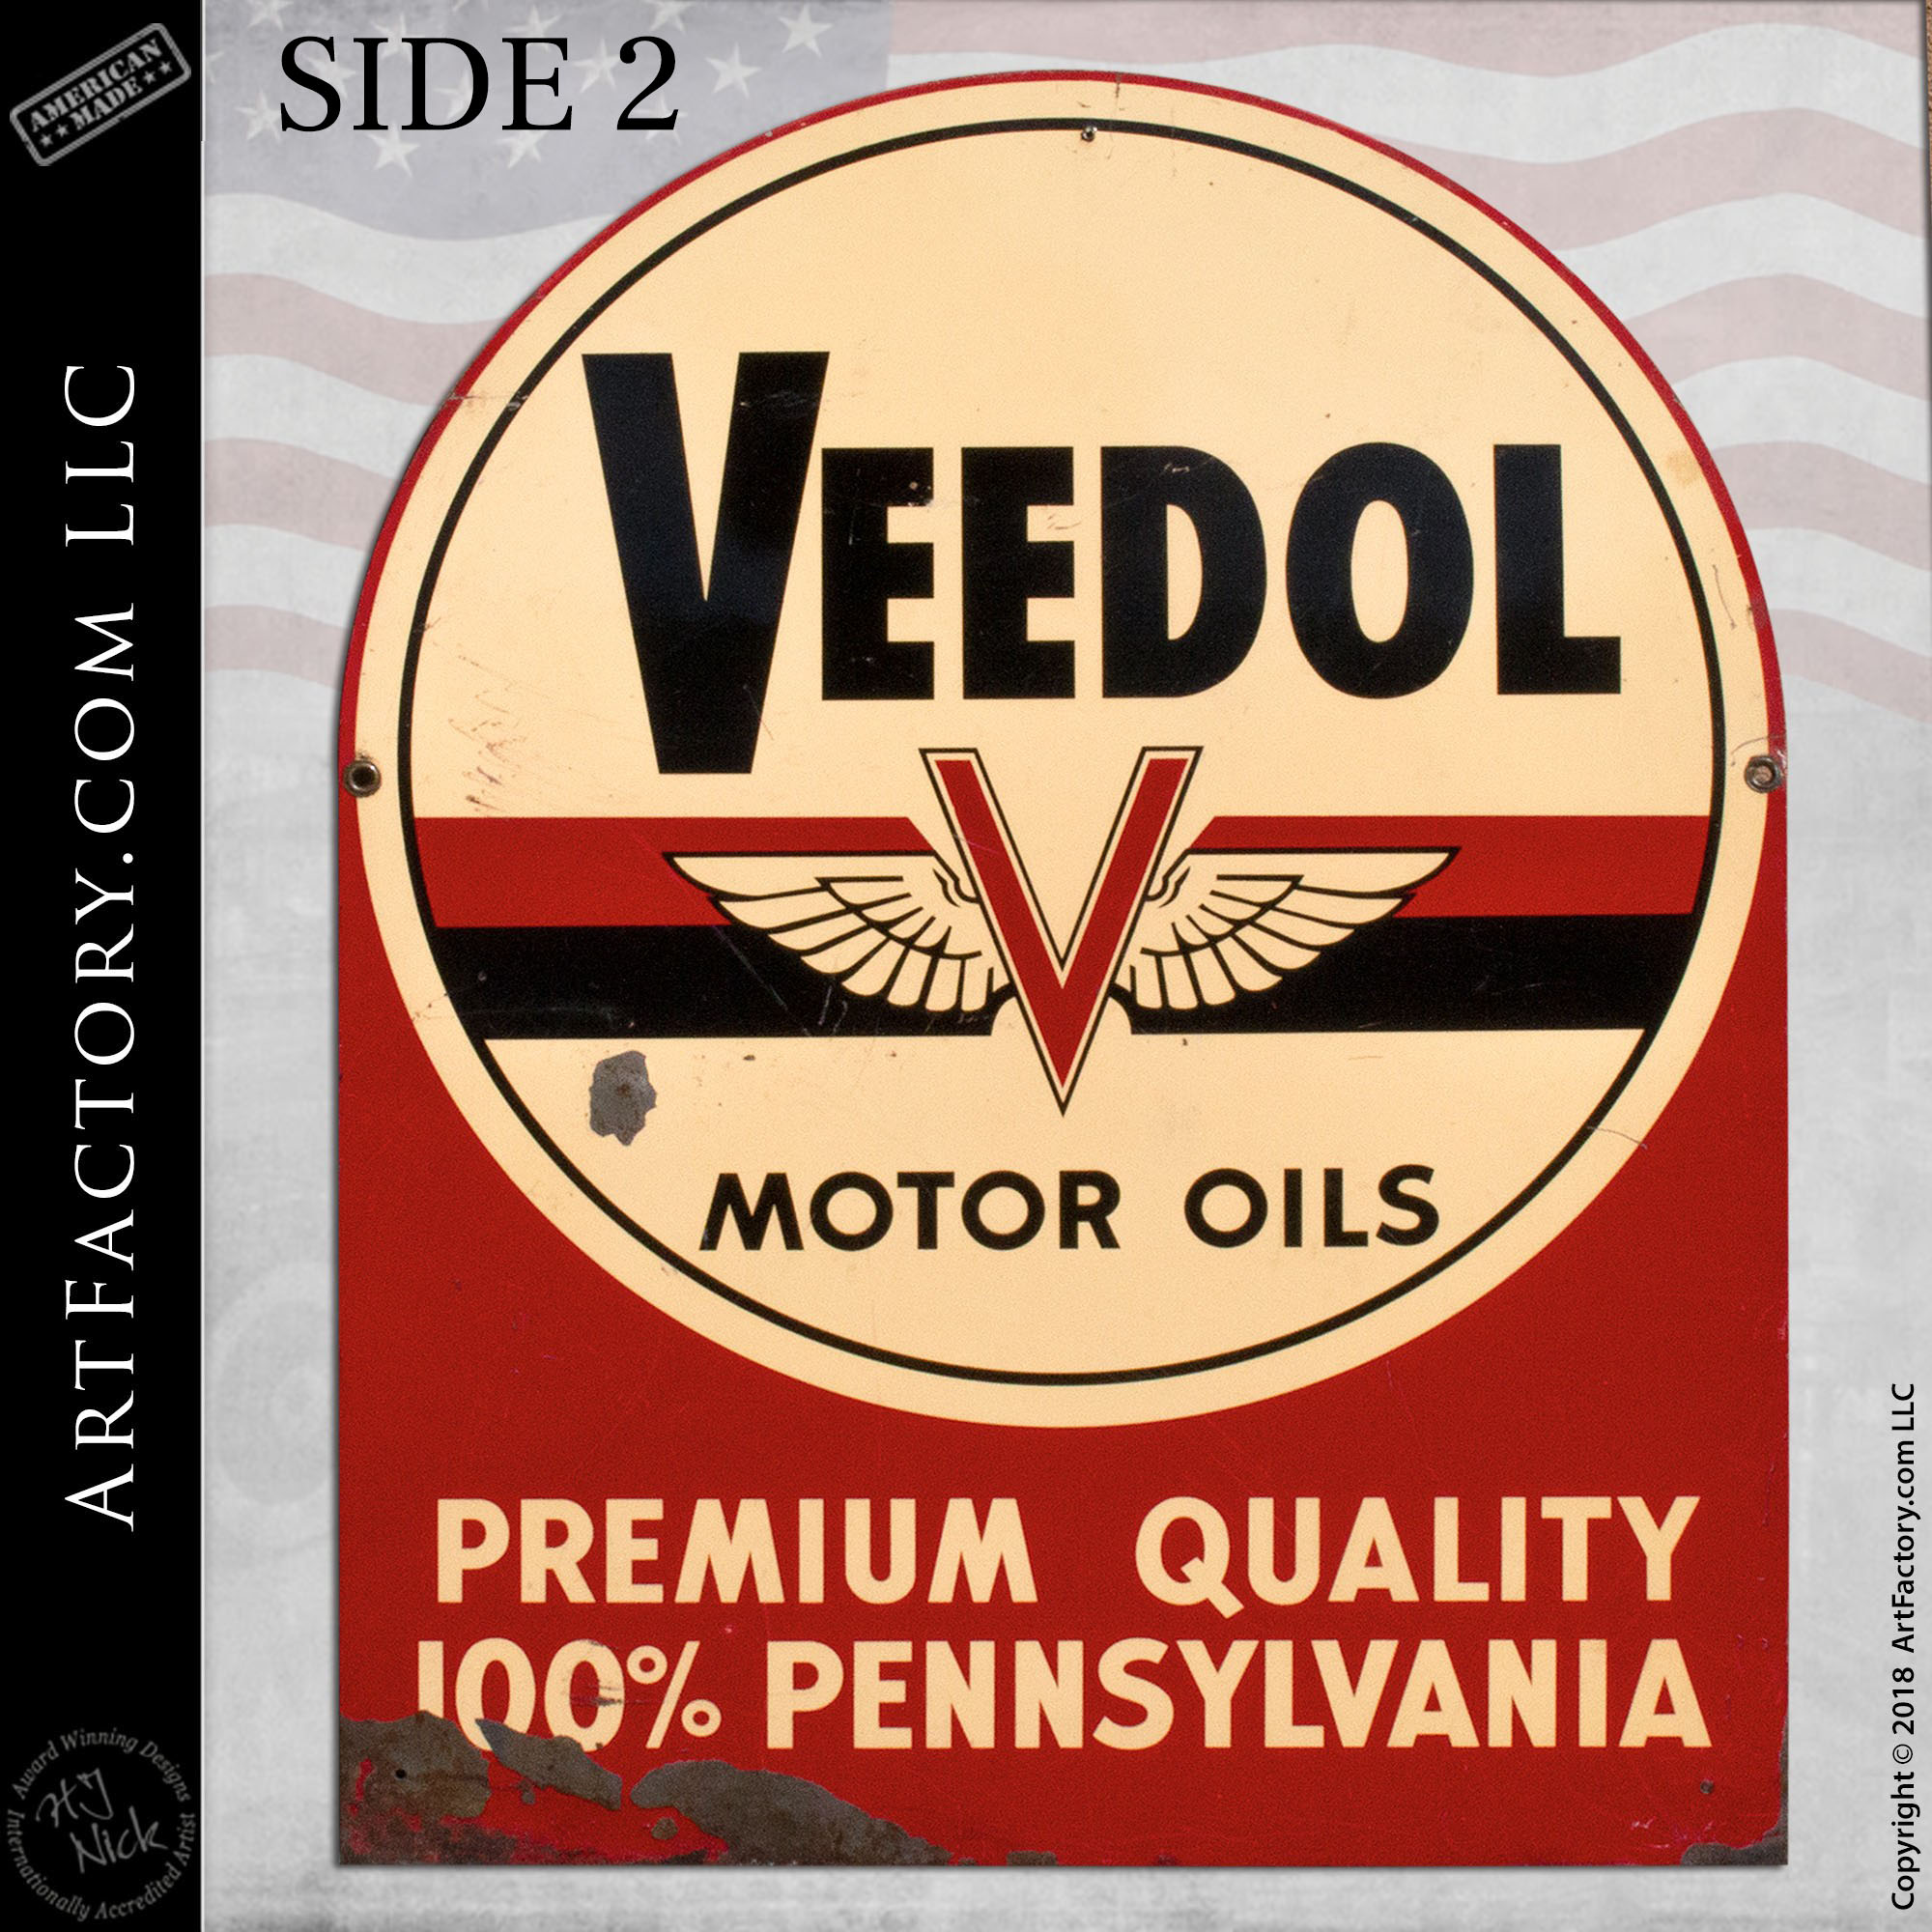 Veedol Motor Oils sign side 2